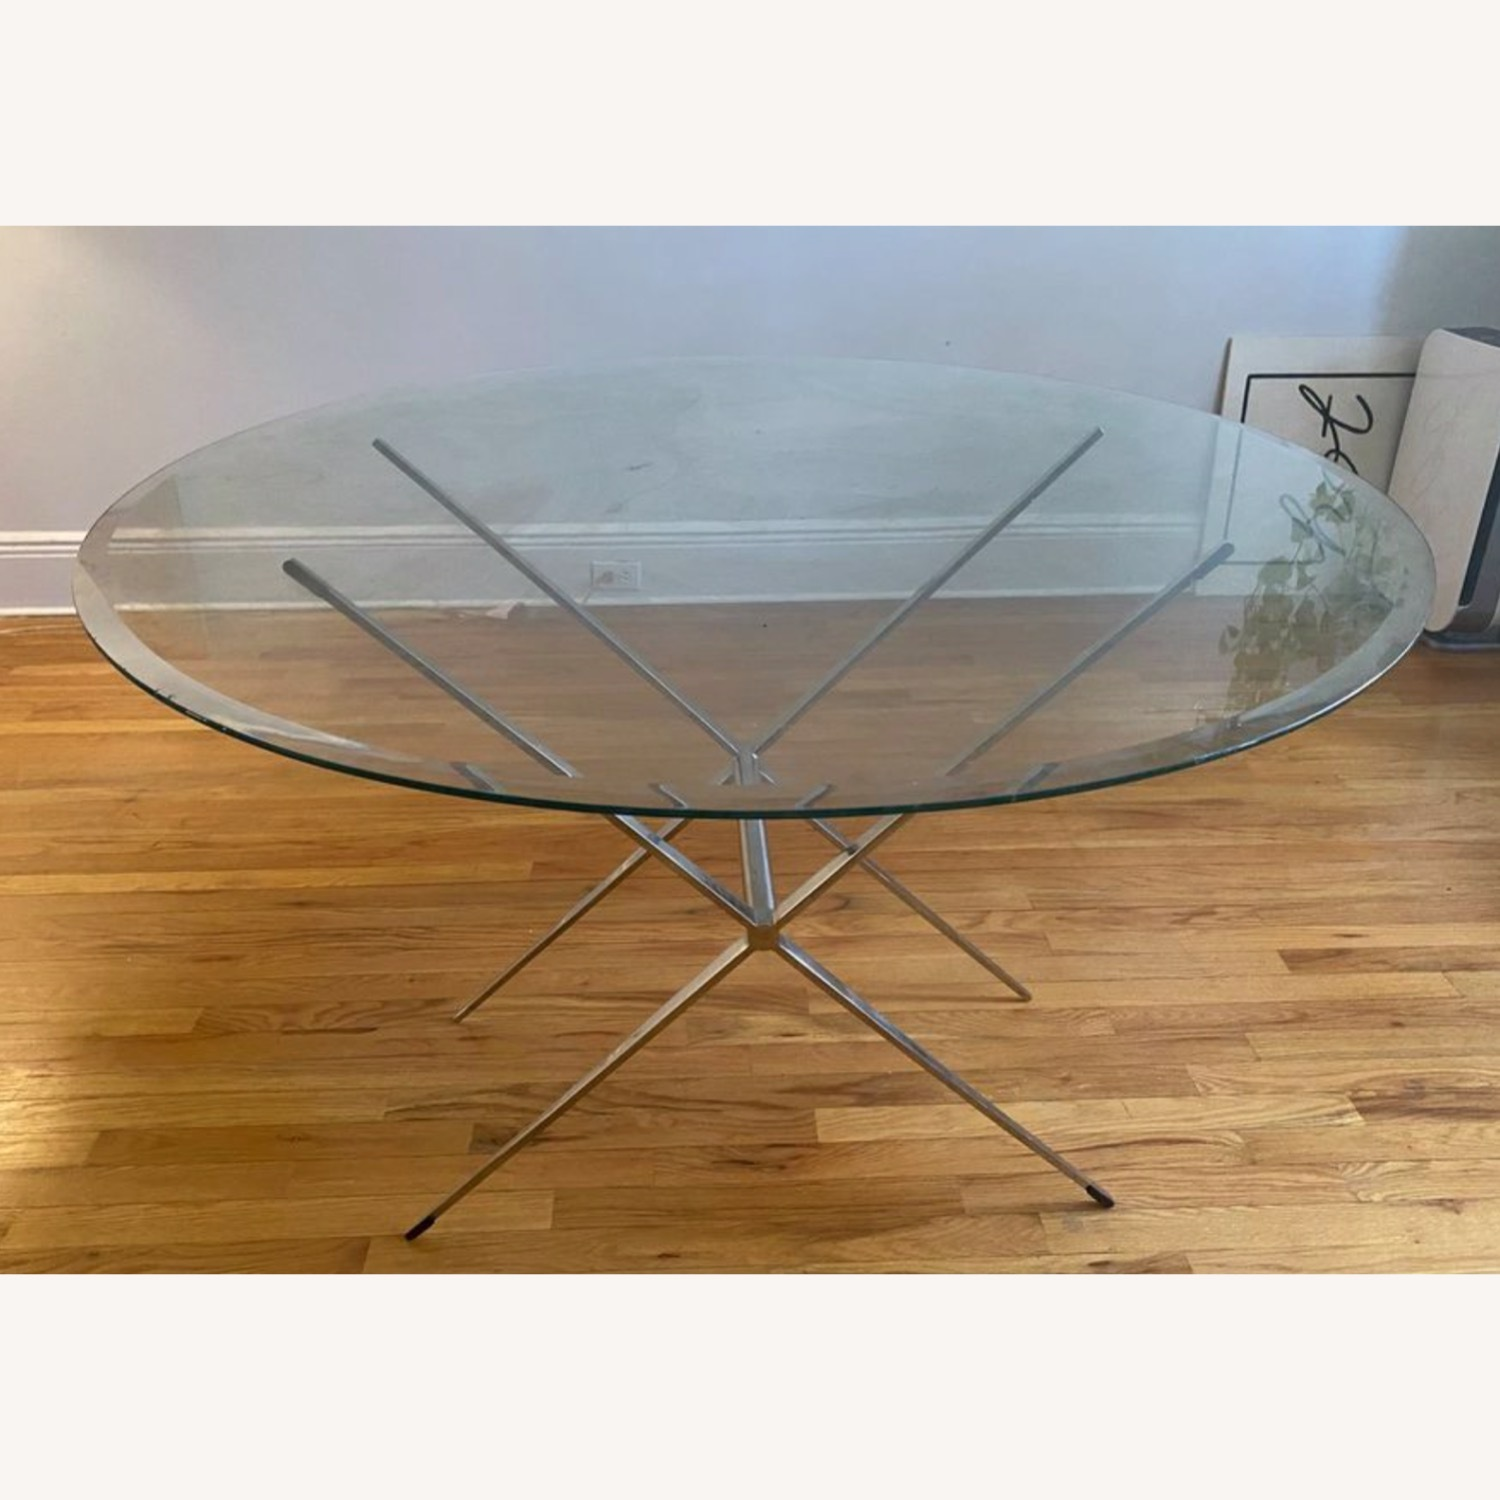 Vintage Glass Coffee Table with Reversible Stand - image-3